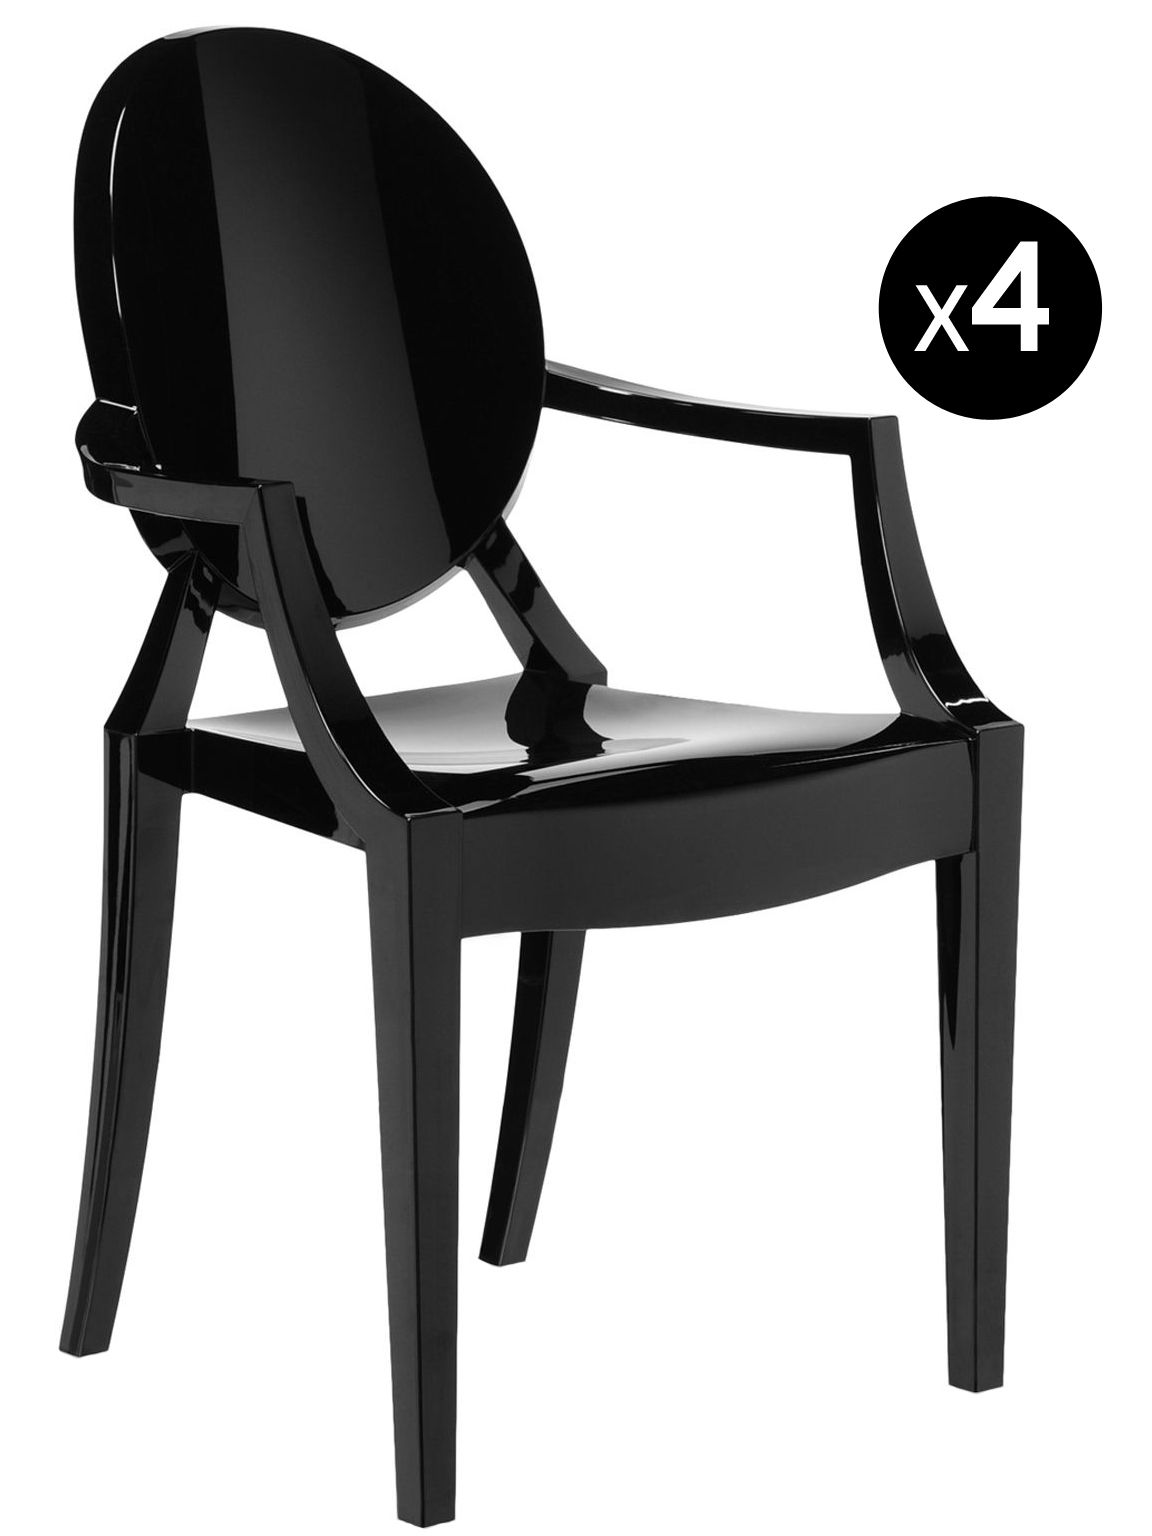 fauteuil empilable louis ghost lot de 4 noir opaque kartell. Black Bedroom Furniture Sets. Home Design Ideas